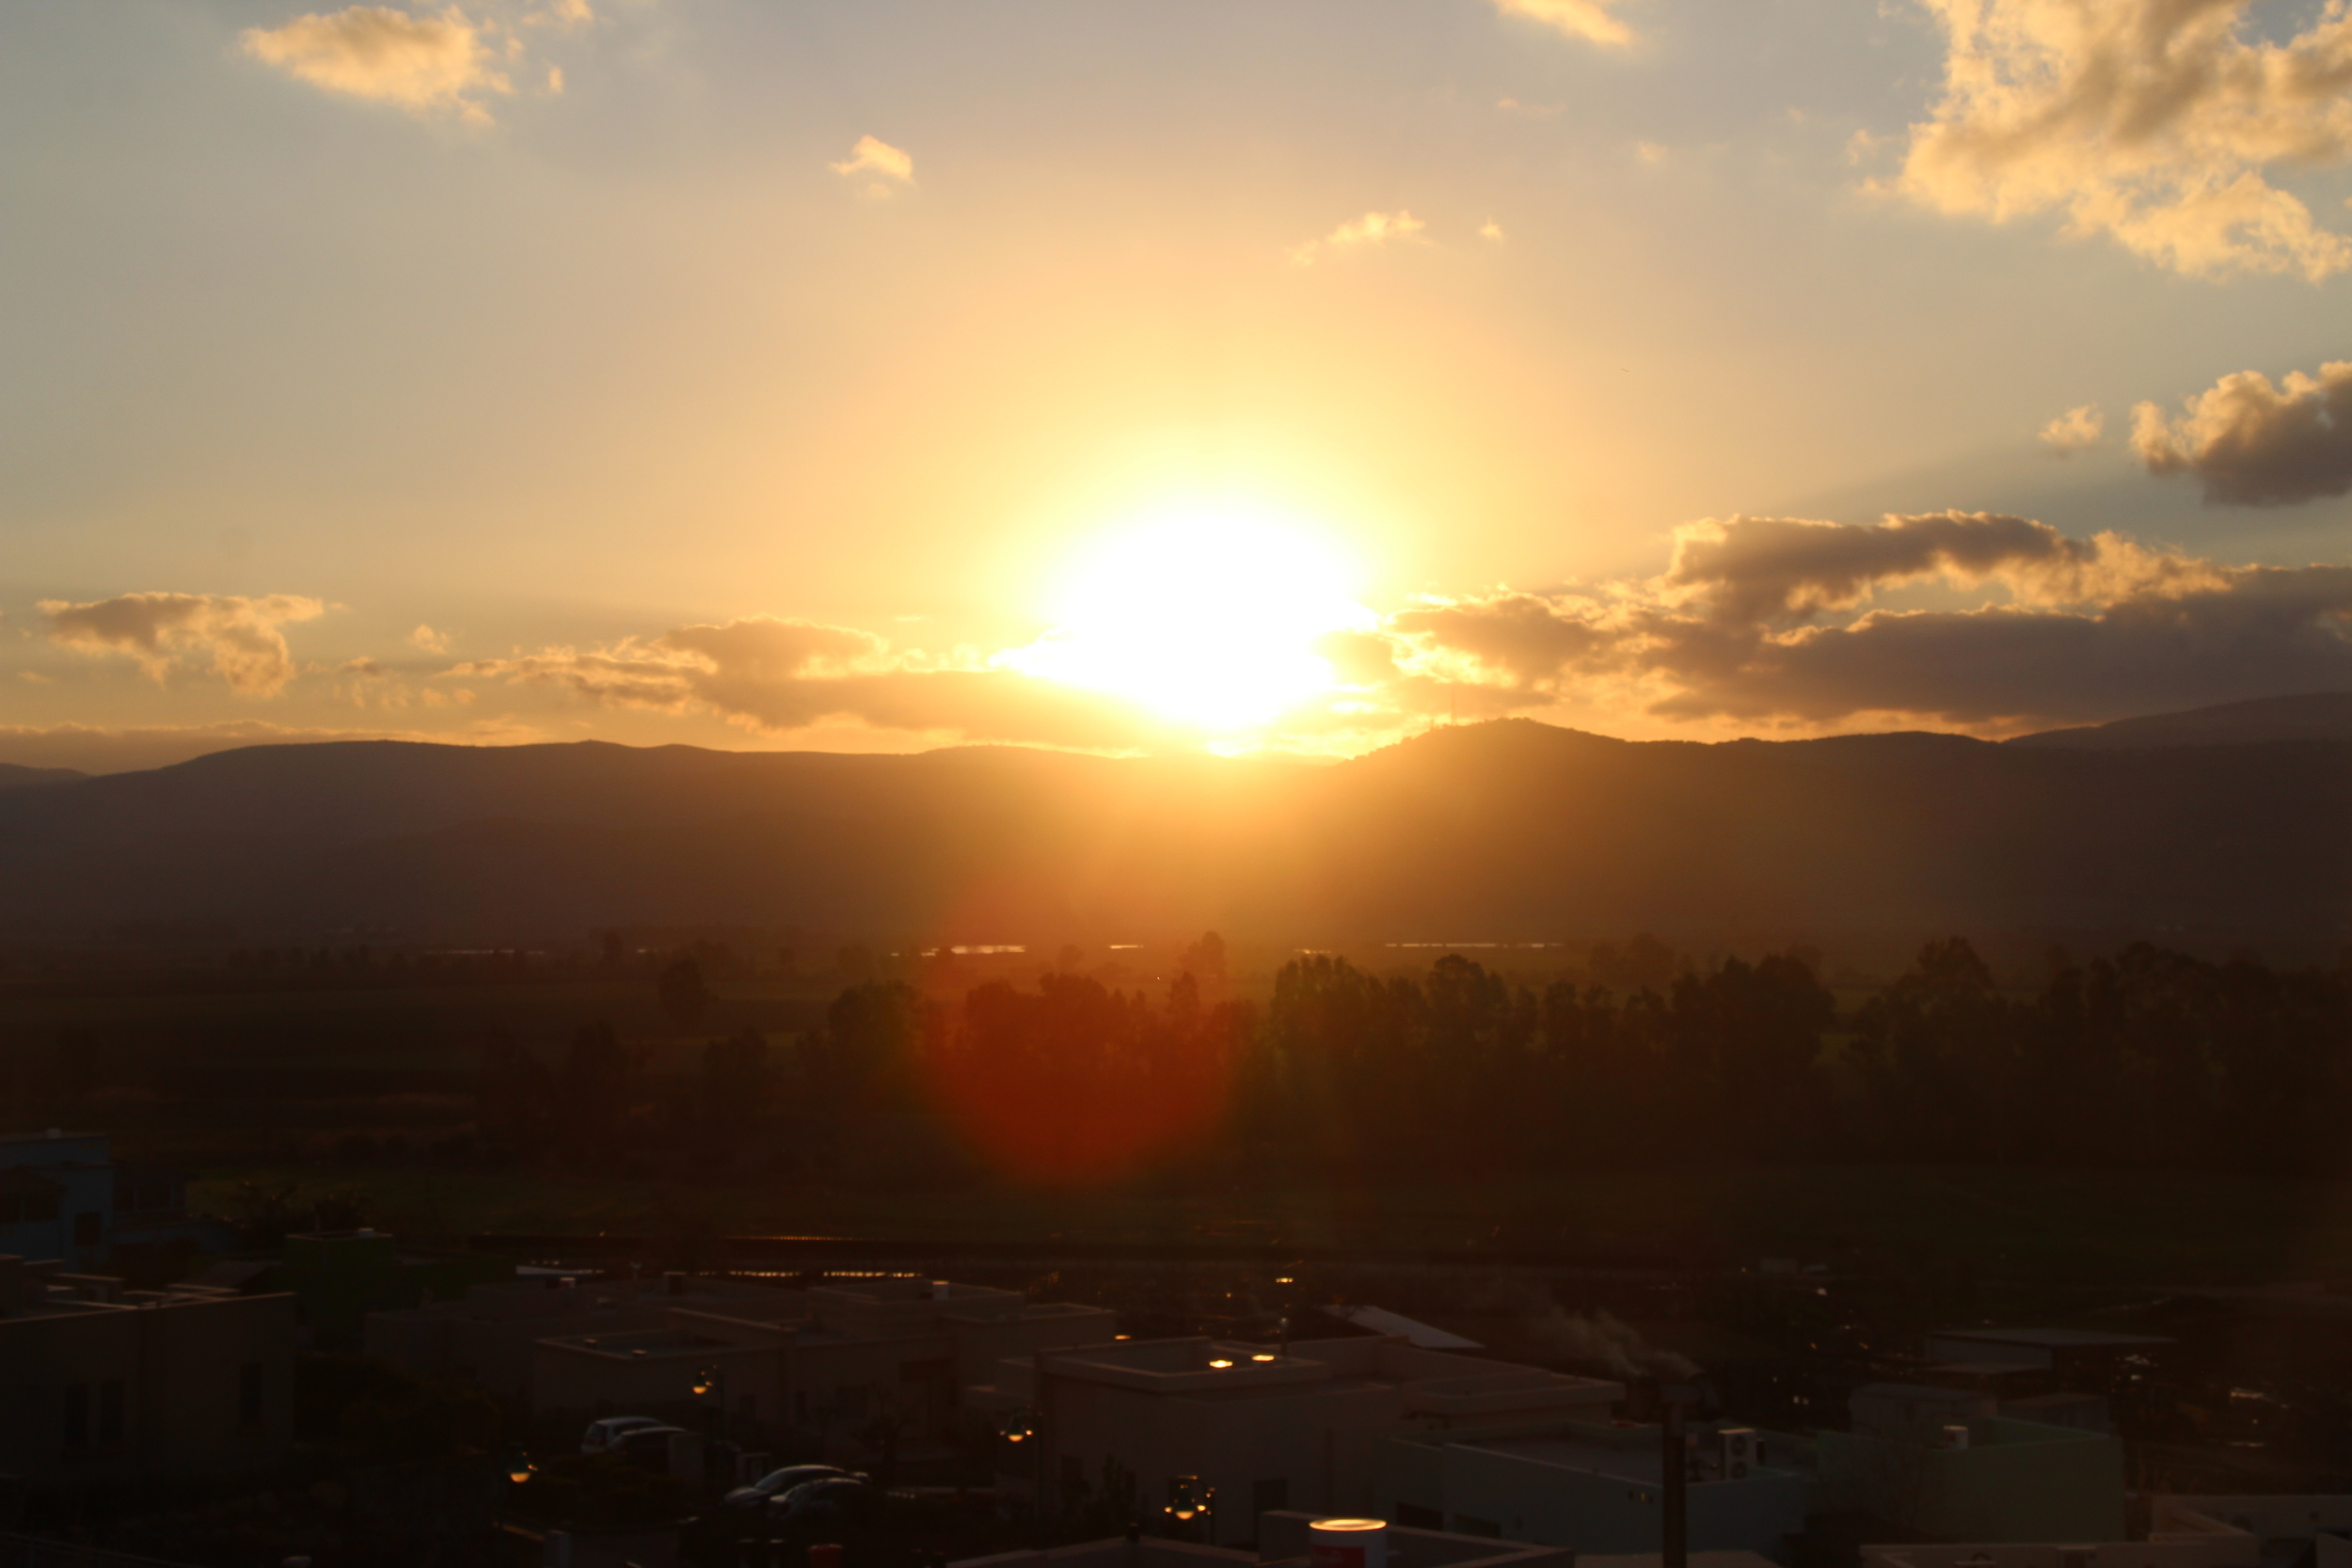 Sunset in the Golan Heights, Israel